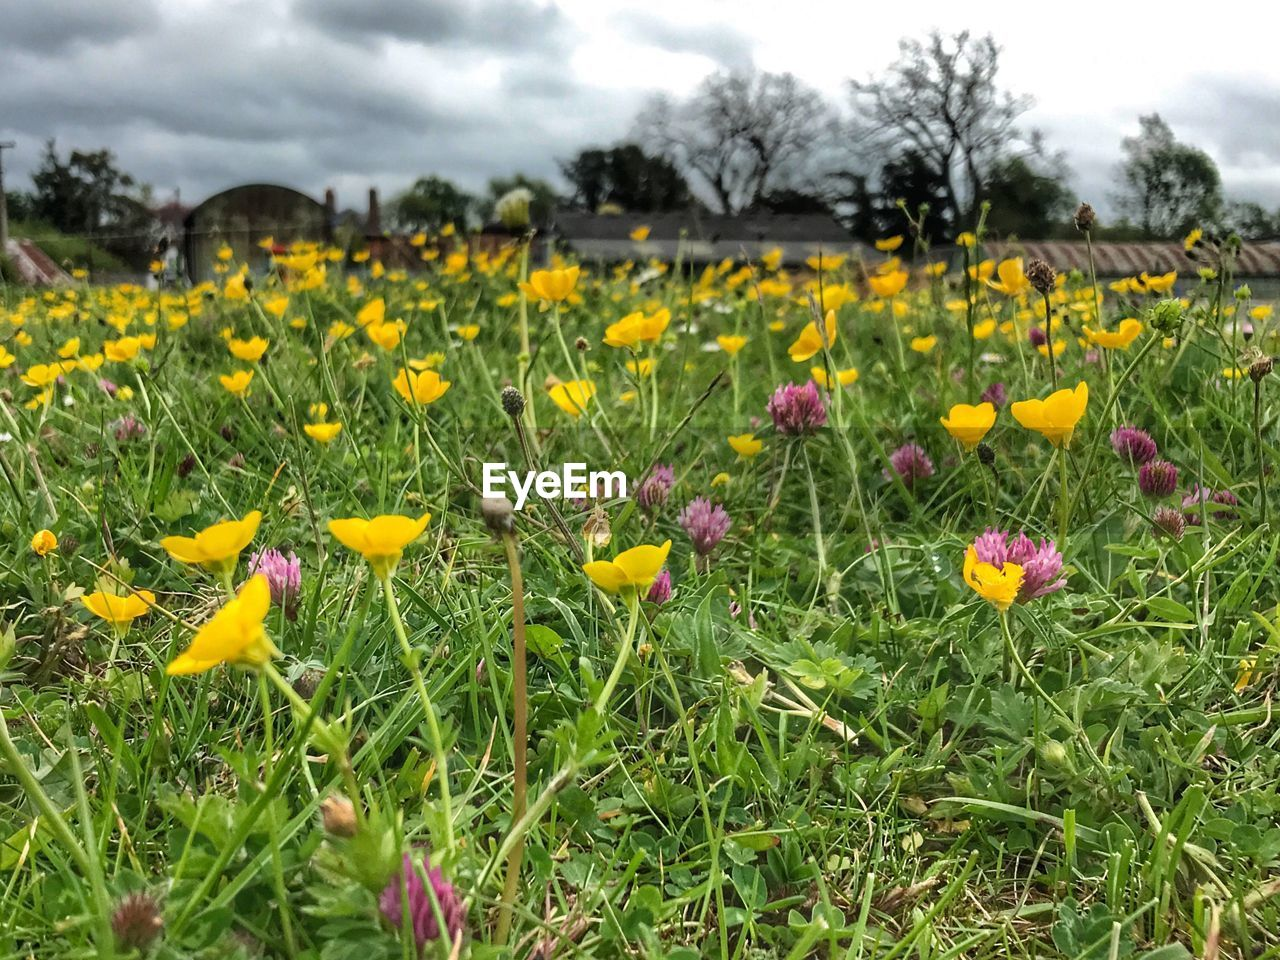 plant, flowering plant, flower, growth, beauty in nature, yellow, field, land, freshness, fragility, vulnerability, sky, nature, day, close-up, cloud - sky, no people, landscape, petal, grass, flower head, outdoors, springtime, flowerbed